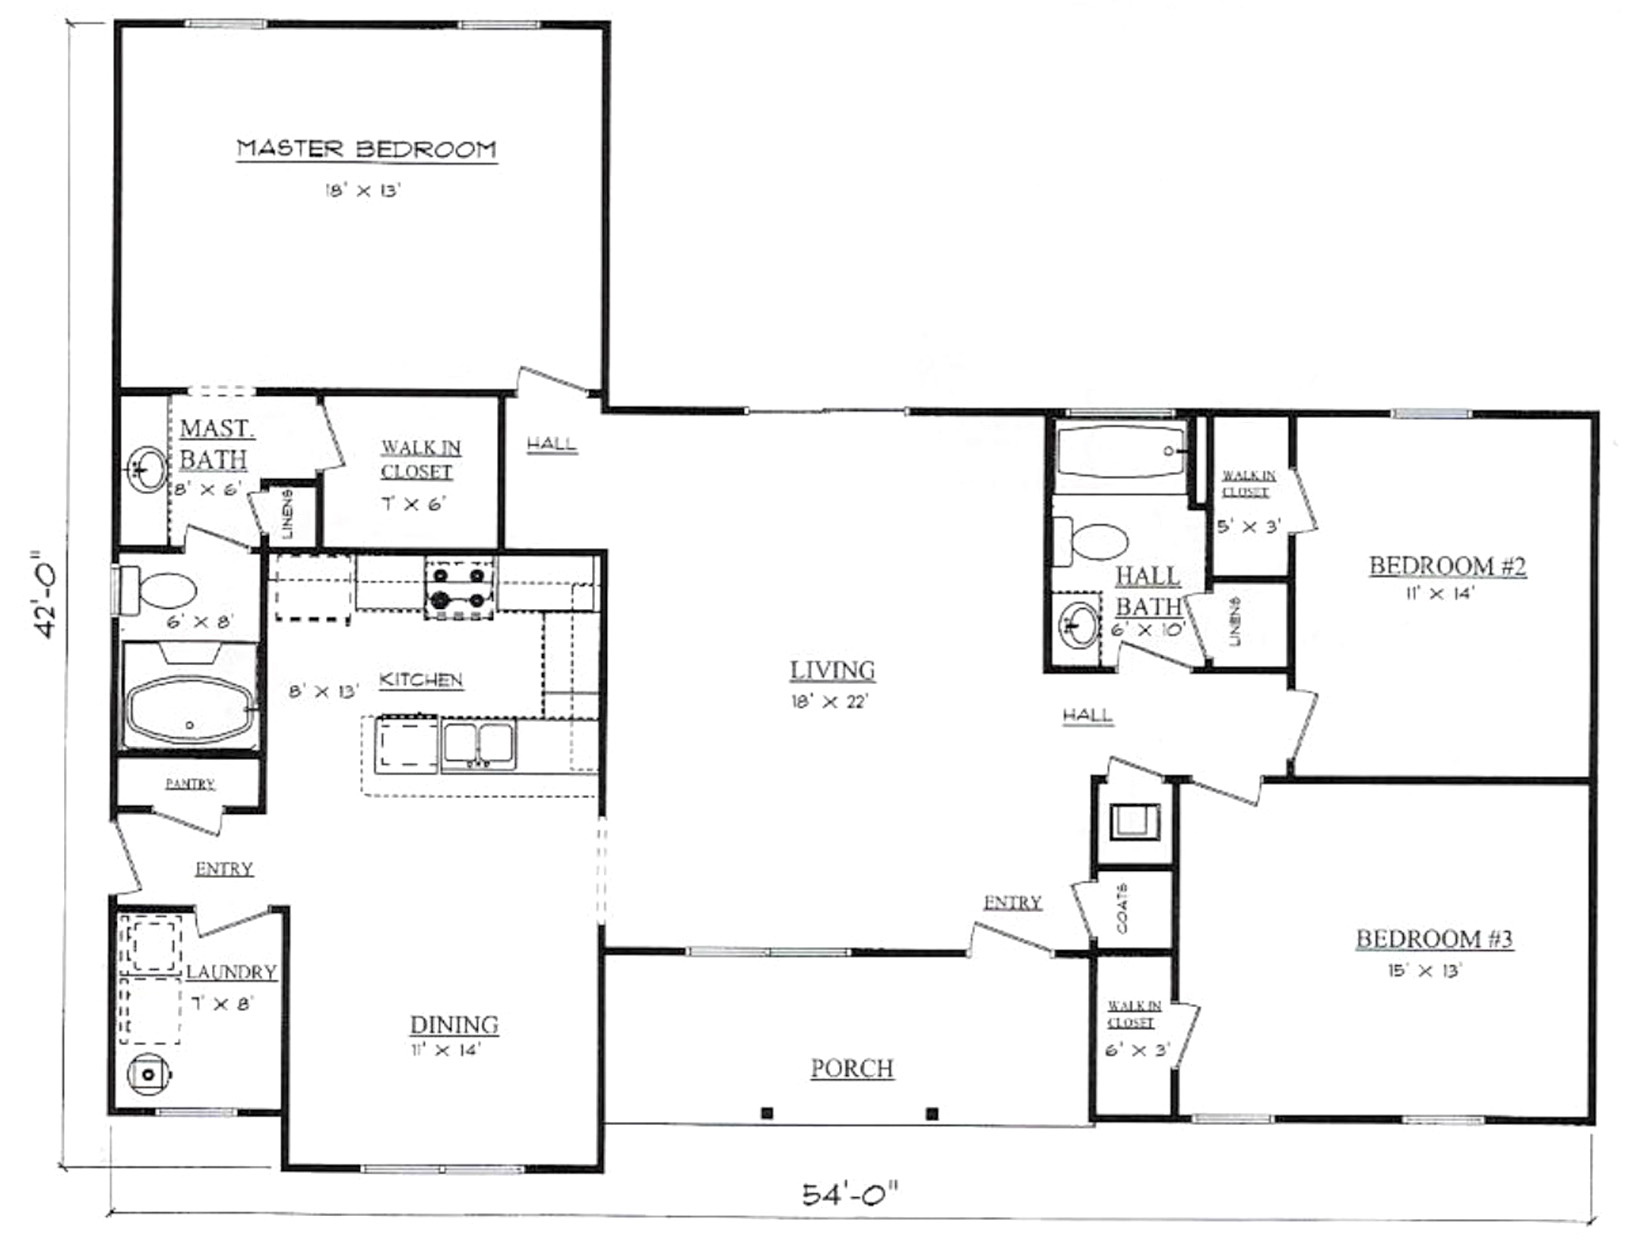 Plans for Westwind Pennyworth Homes Tallahassee Home Builder